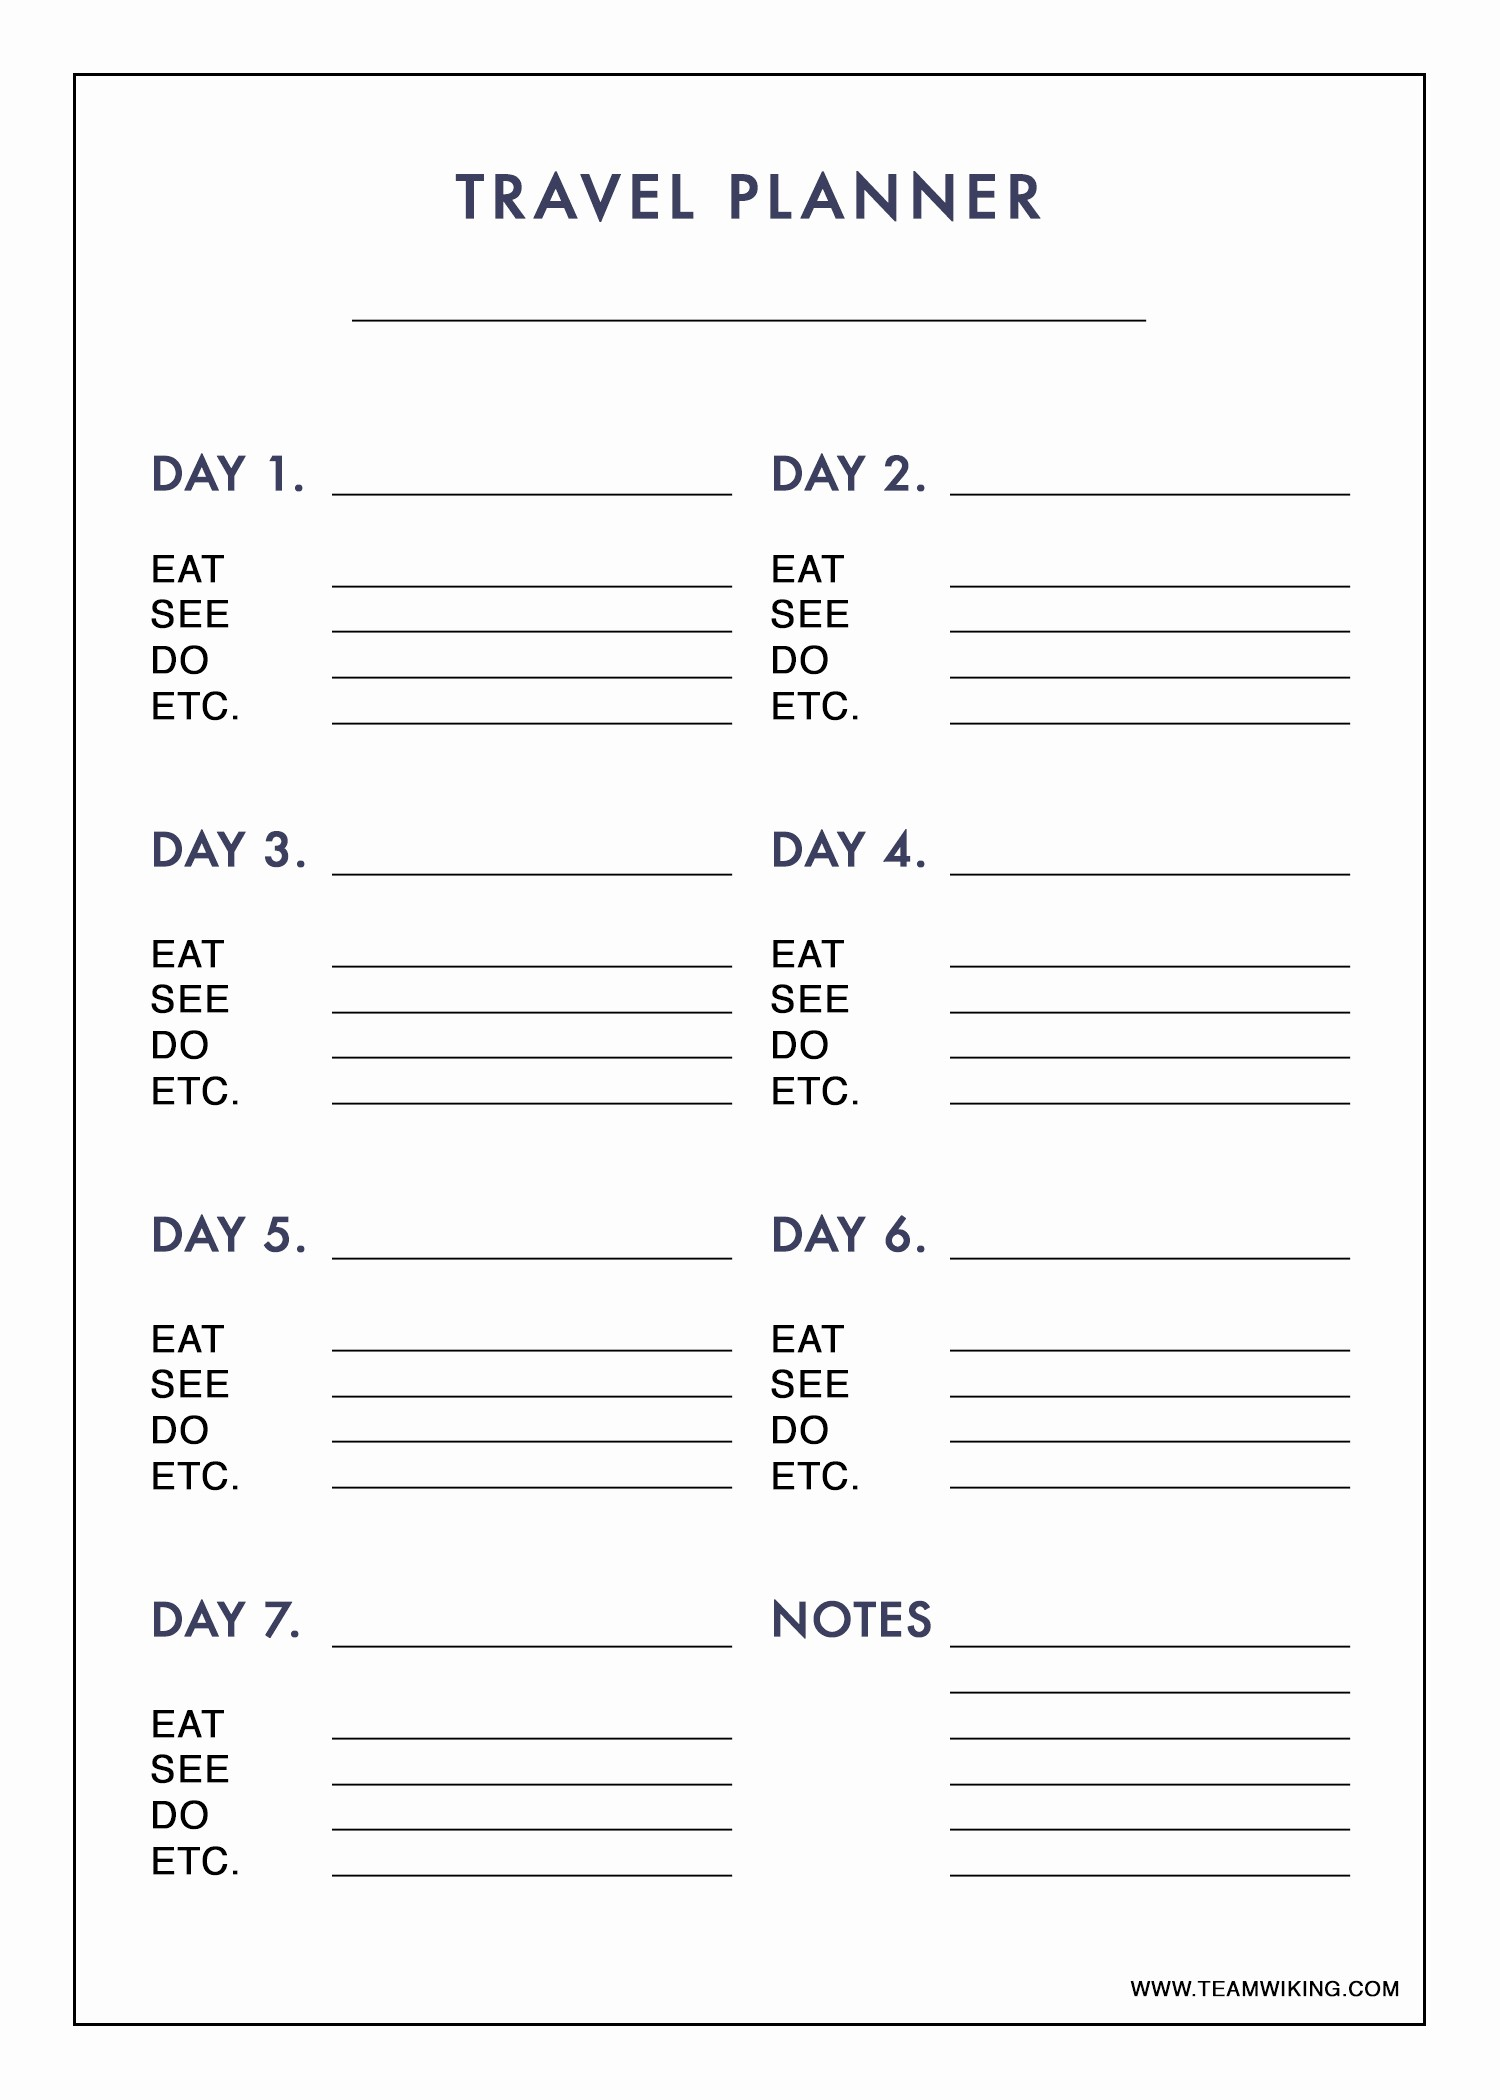 Free Printable Vacation Planner Template New Printable Travel Planner Hej Doll